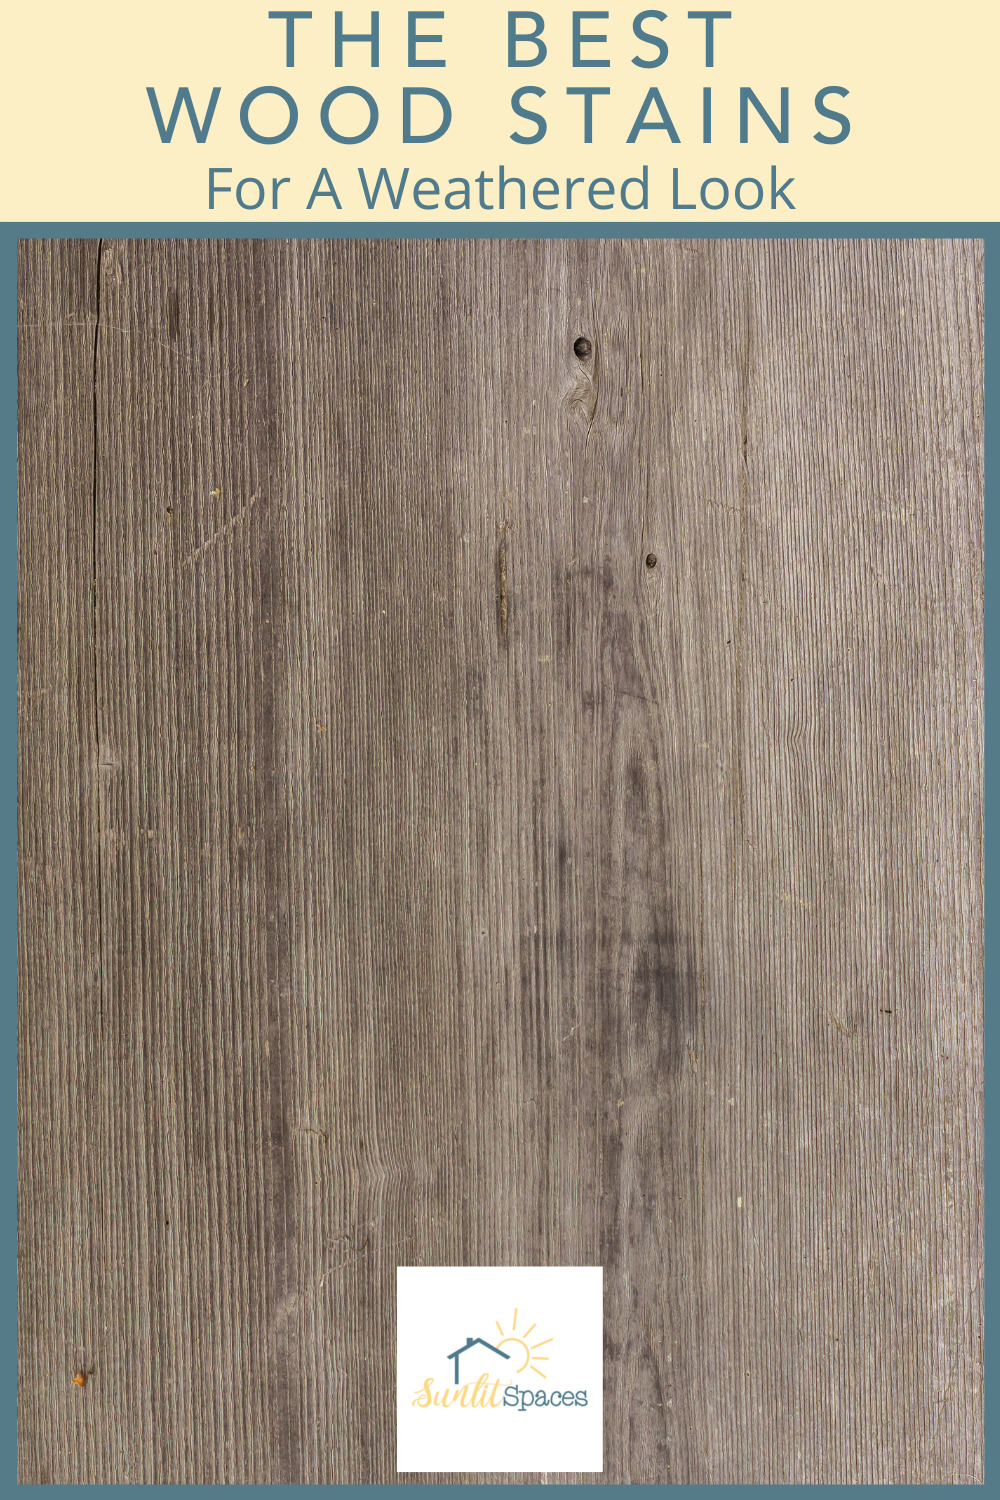 Sunlitspaces.com has the best ideas to help you design and execute a perfect living space! Find creative ways to make your place feel like home. Get that cozy feel of antique furniture in a flash with these amazing weathered looking wood stains!